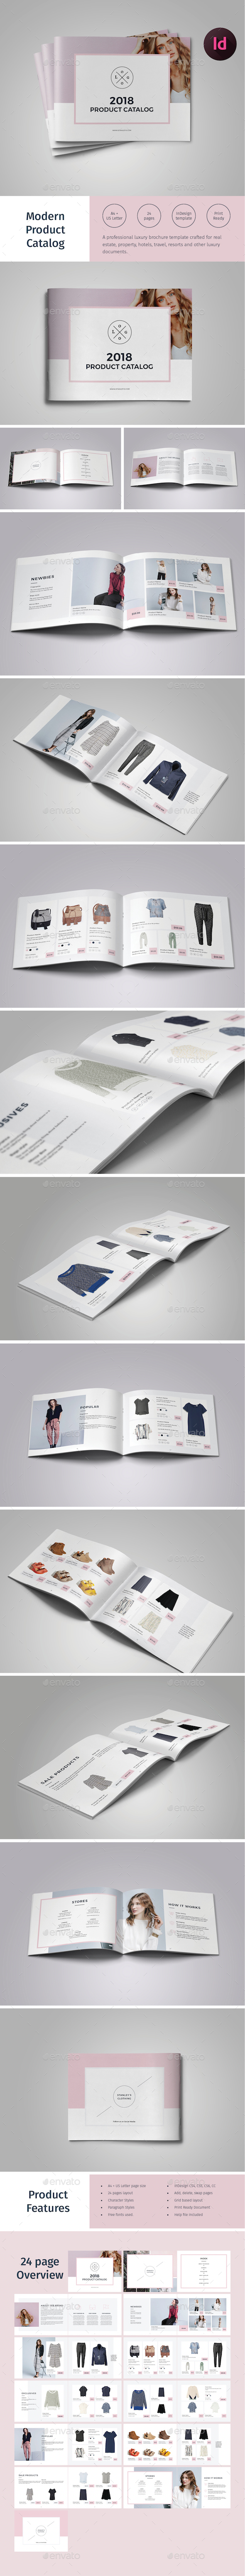 Modern Product Catalog - Catalogs Brochures